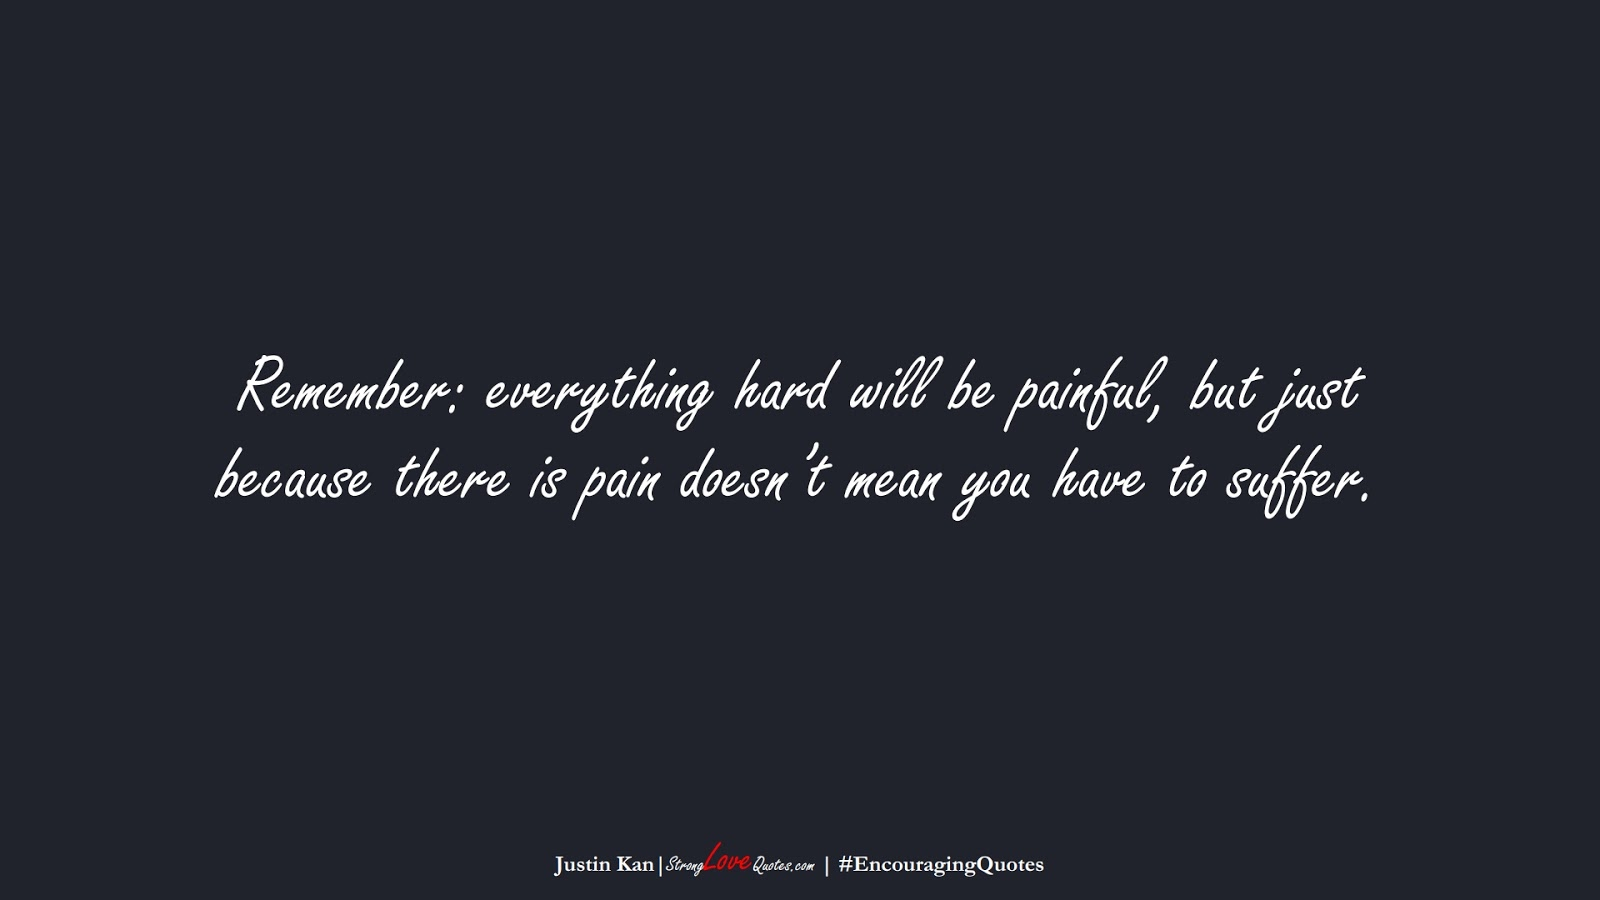 Remember: everything hard will be painful, but just because there is pain doesn't mean you have to suffer. (Justin Kan);  #EncouragingQuotes